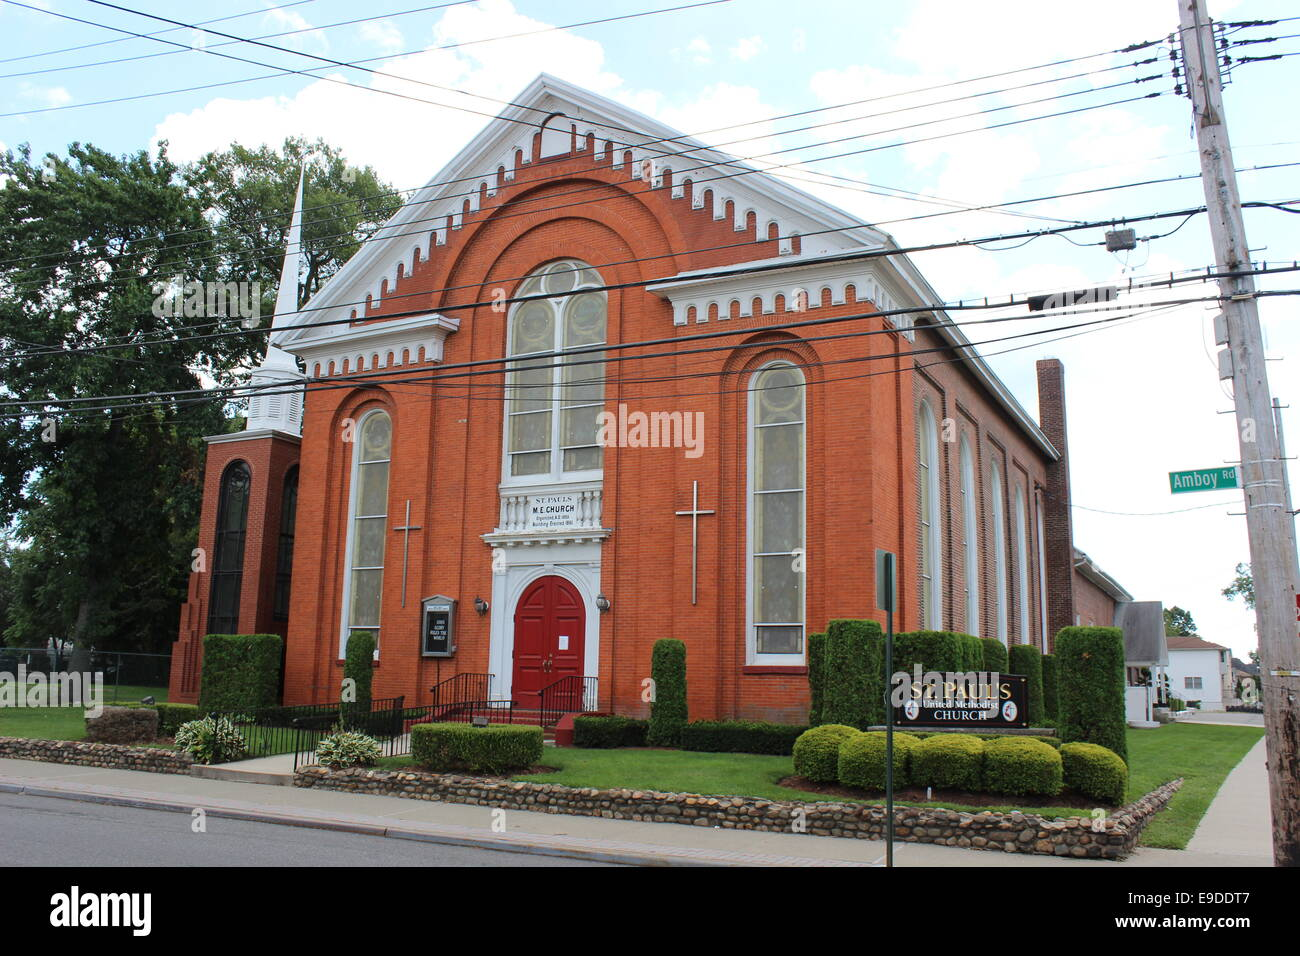 St. Paul's United Methodist Church, built in 1883 in Tottenville, Staten Island, New York - Stock Image